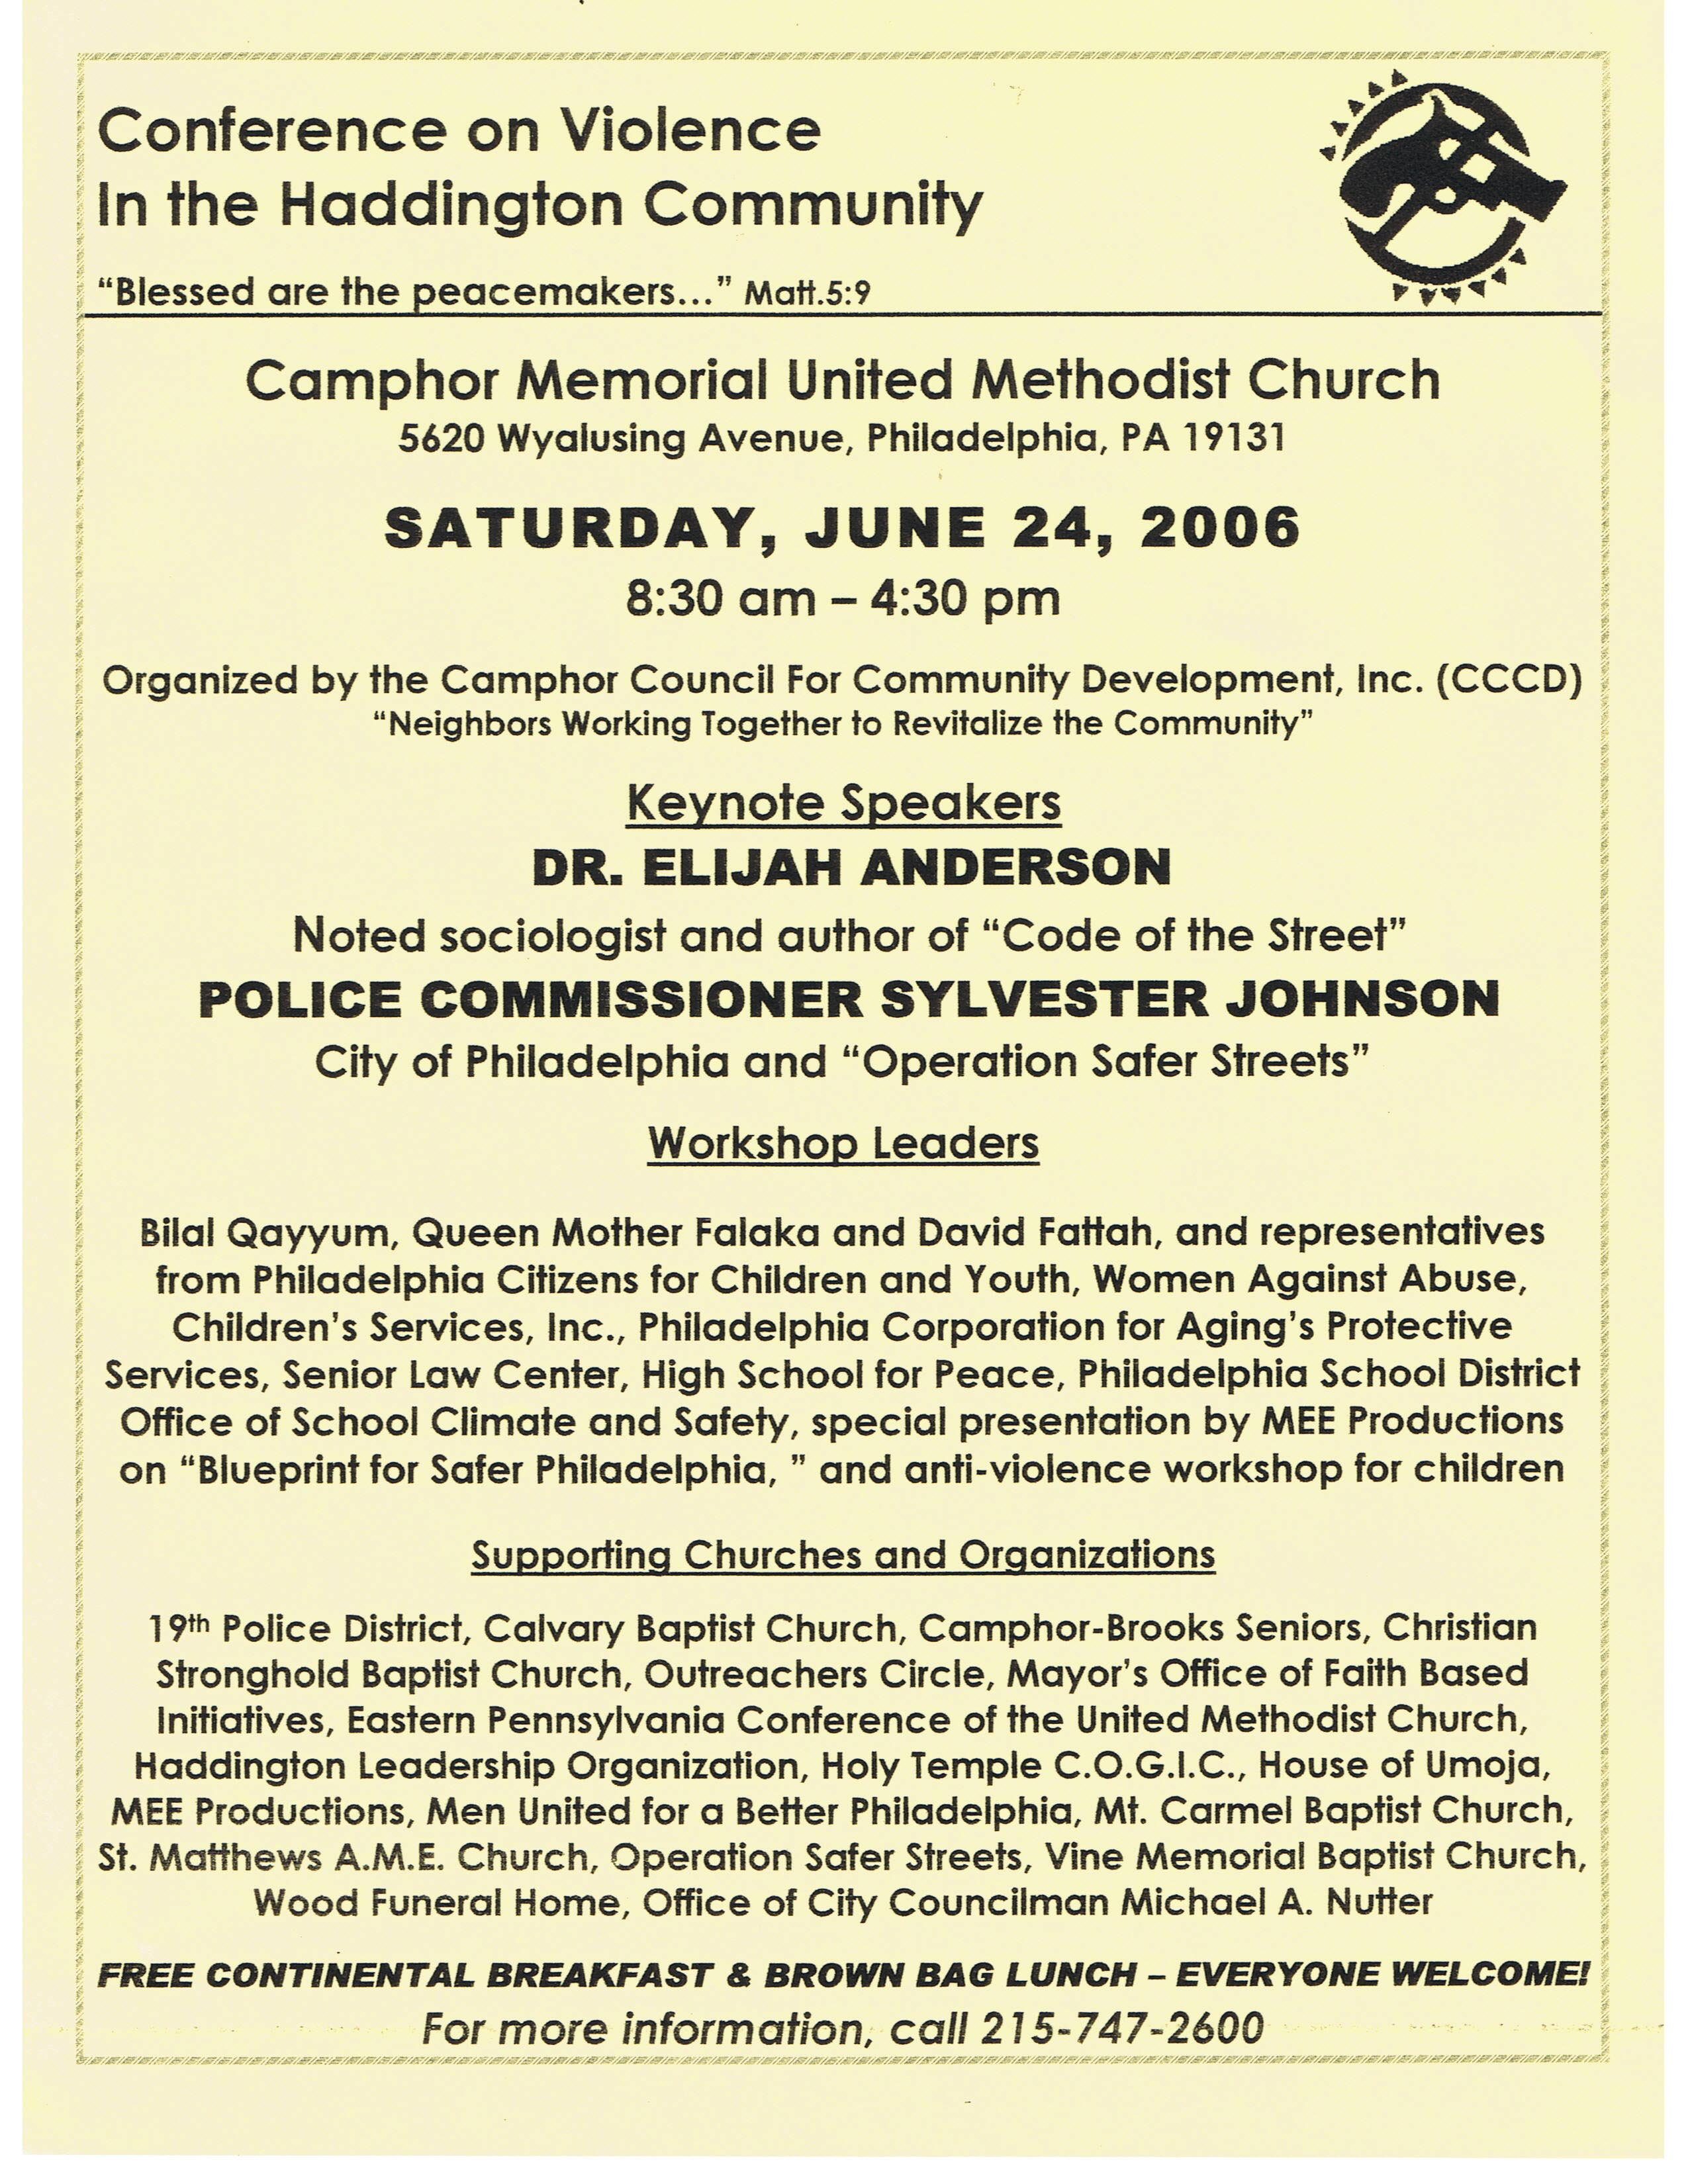 Welcome to camphor memorial united methodist church violence conference flyer malvernweather Image collections